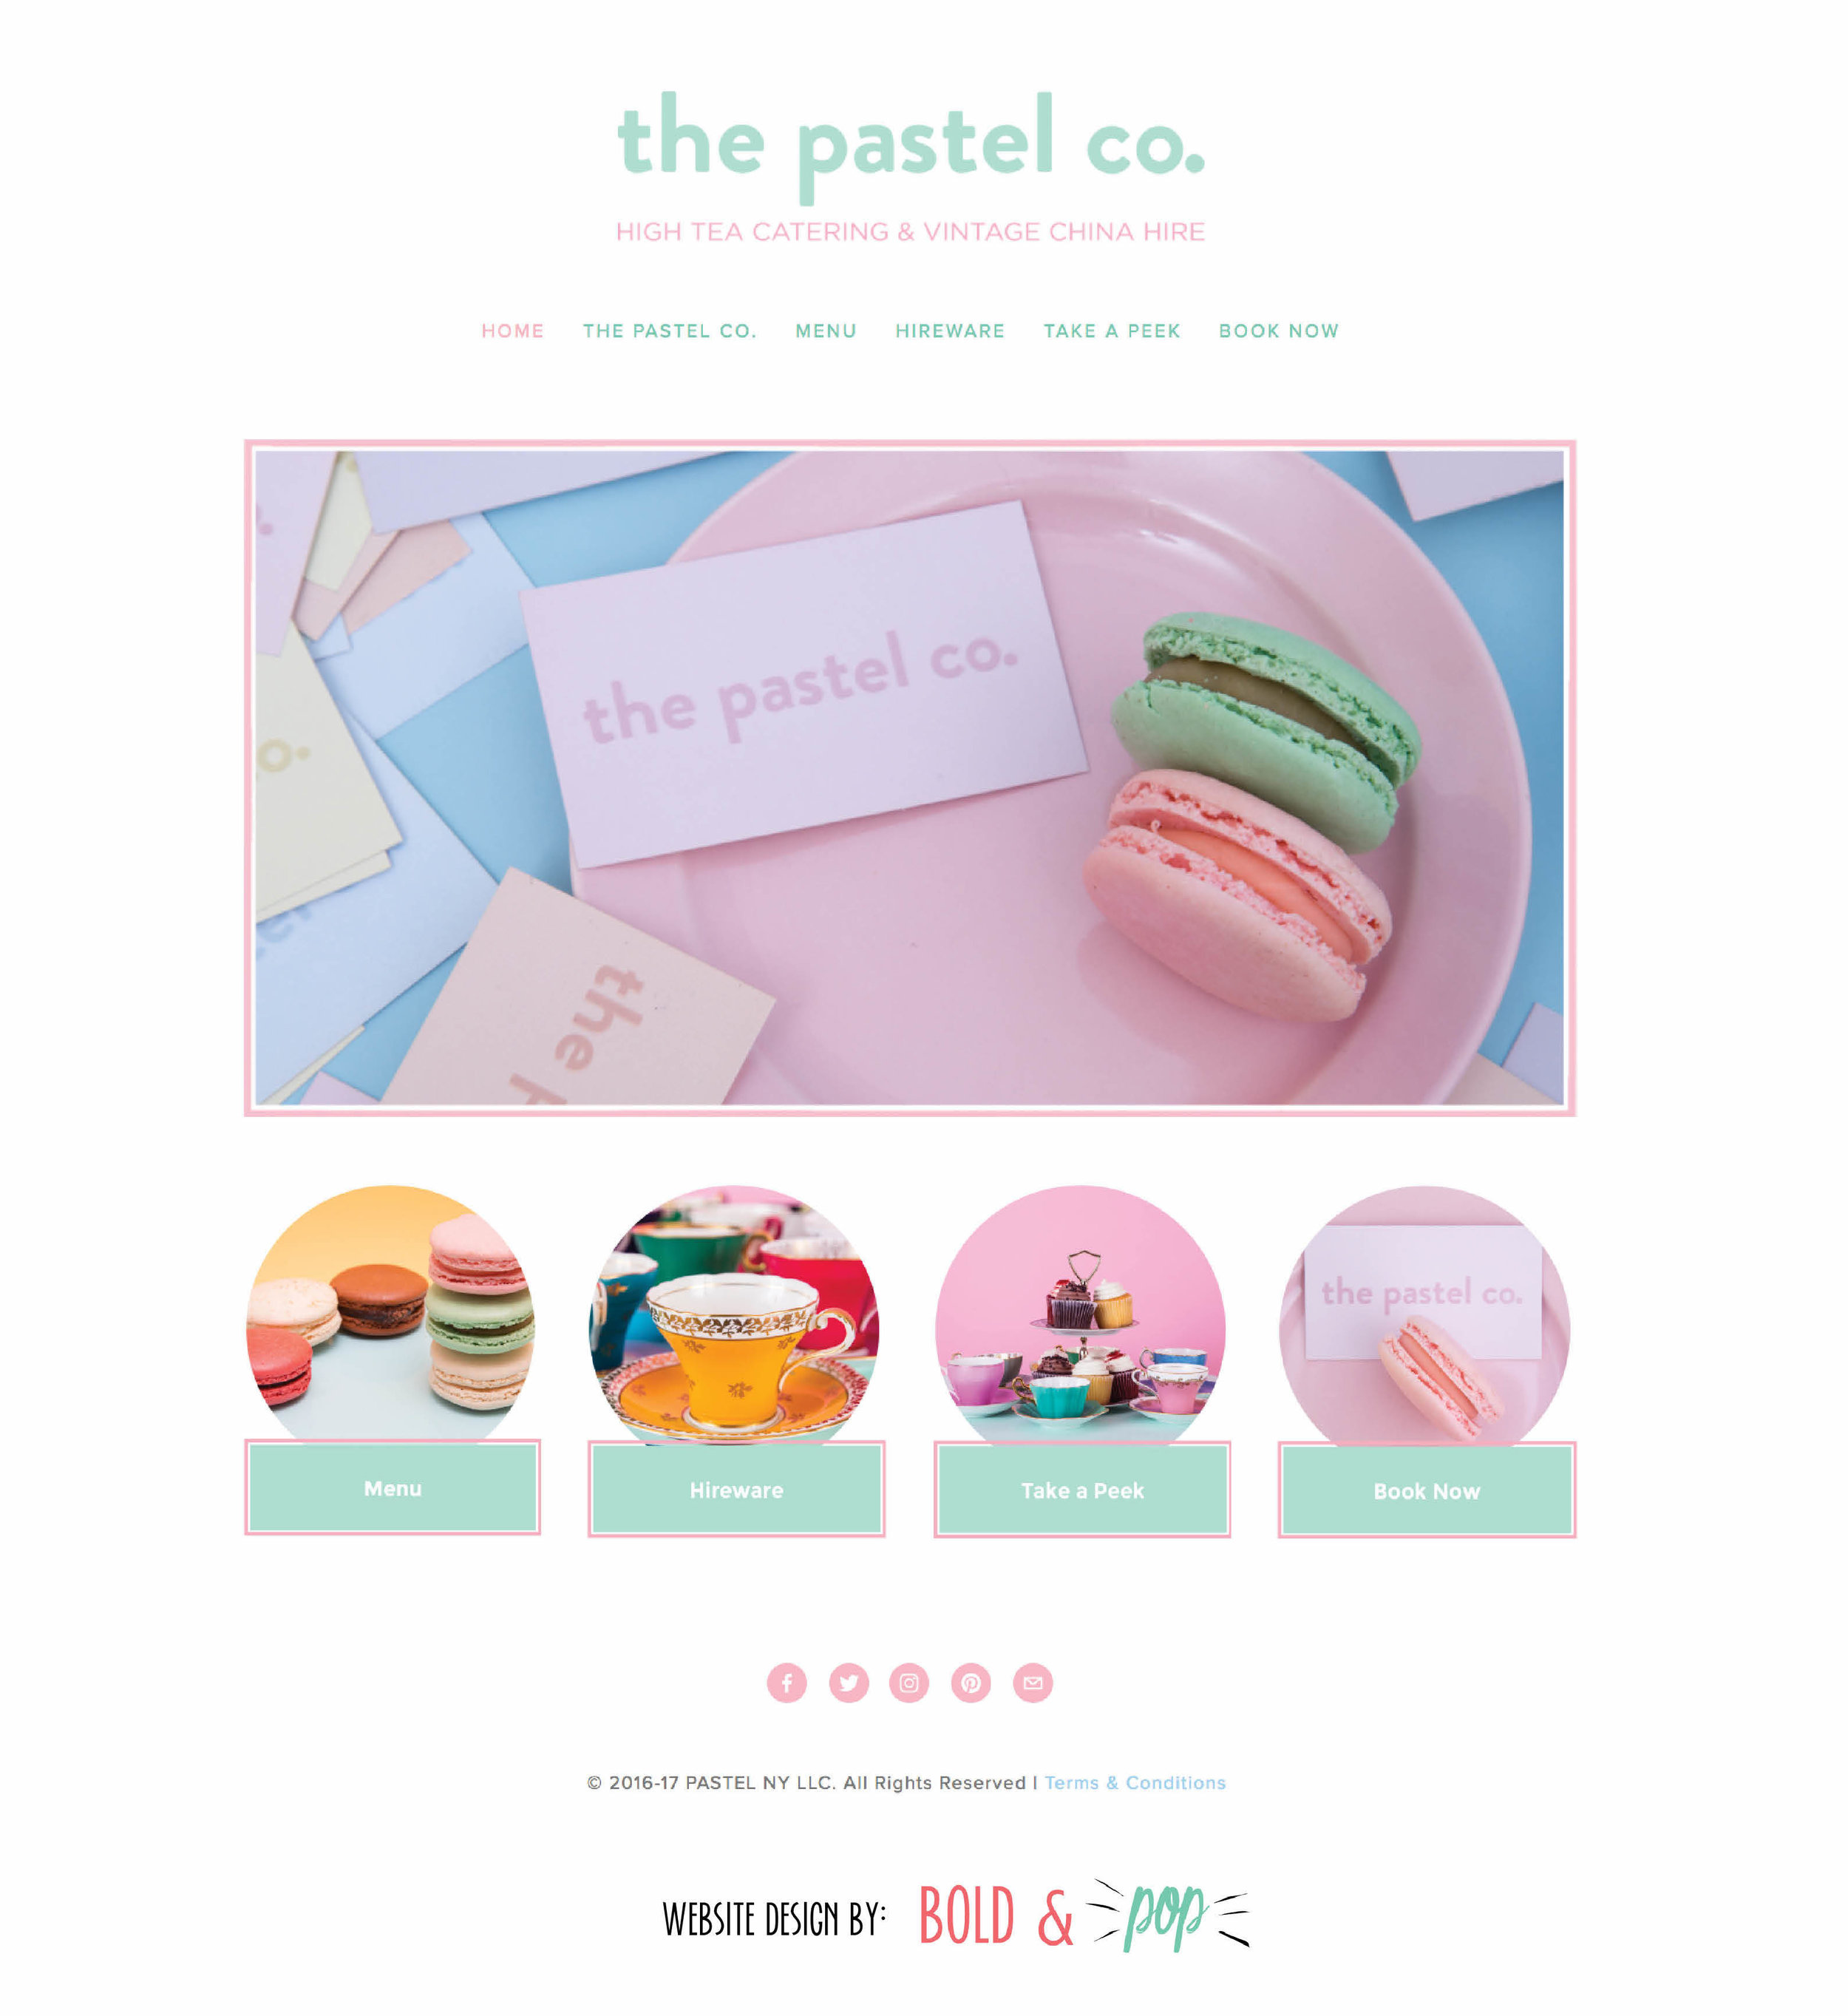 Bold & Pop : The Pastel Co. Squarespace Website Refresh